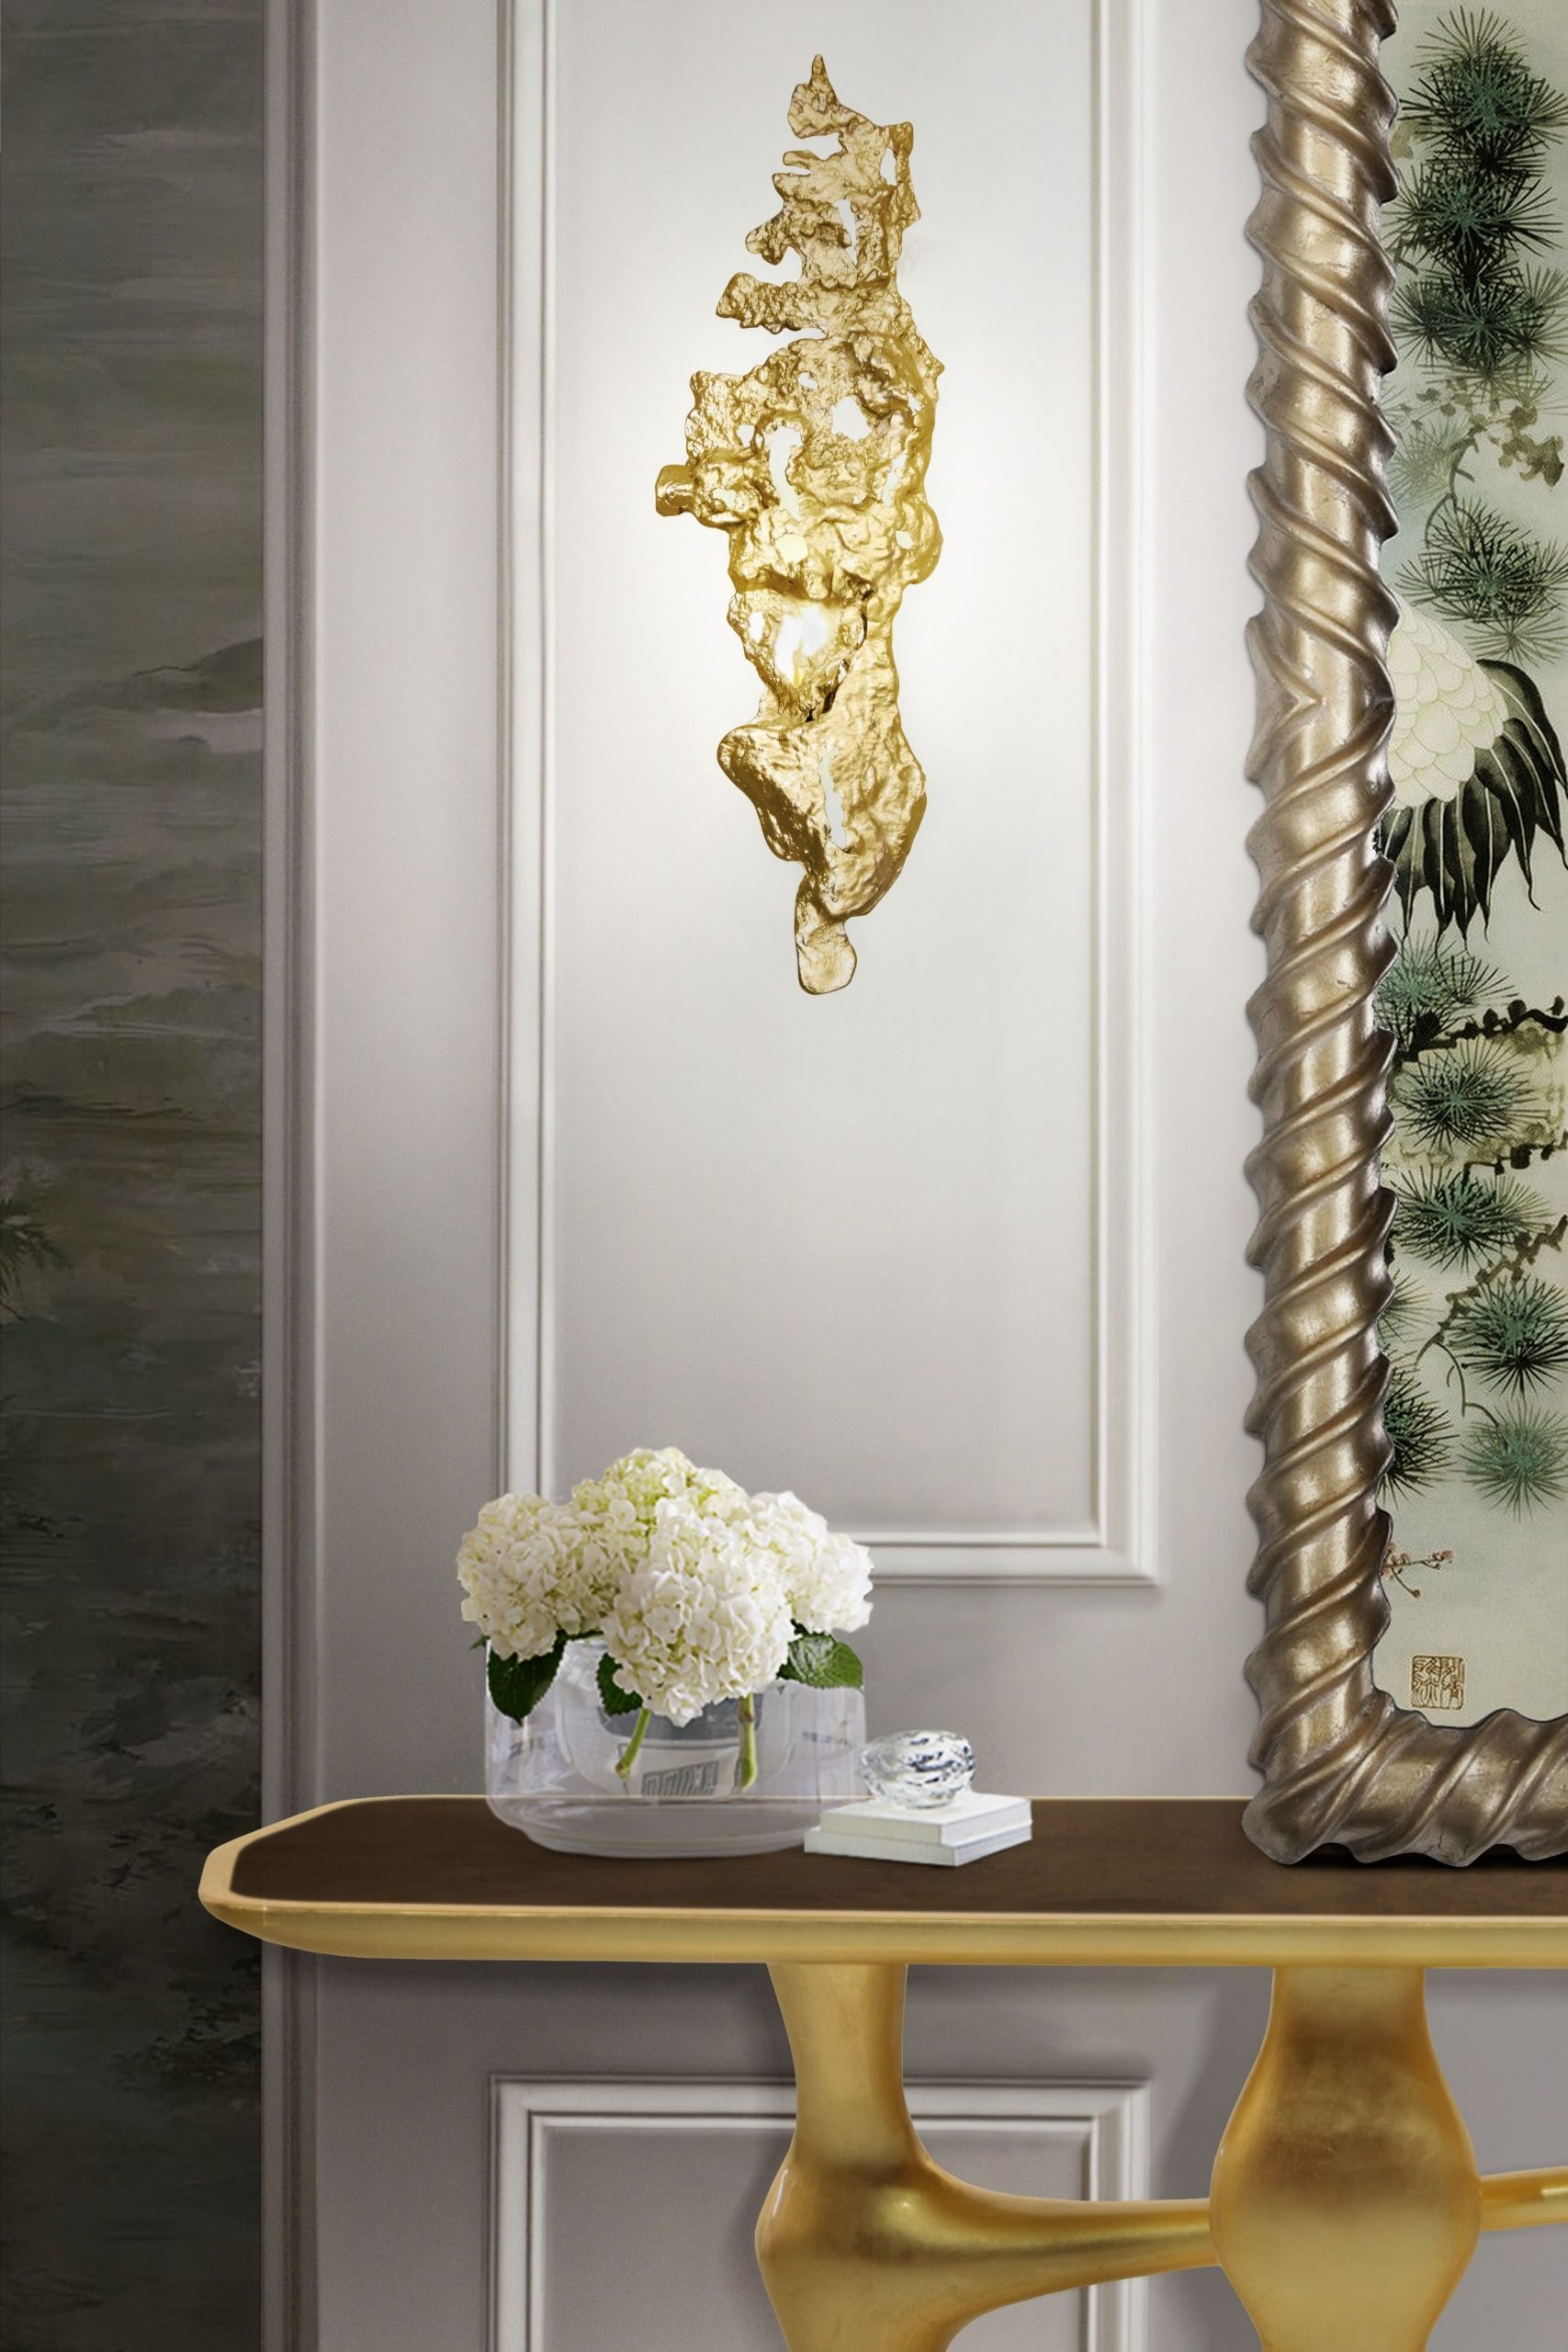 Wall Lamps: Give Your Home a Whole New Look With These Beauties